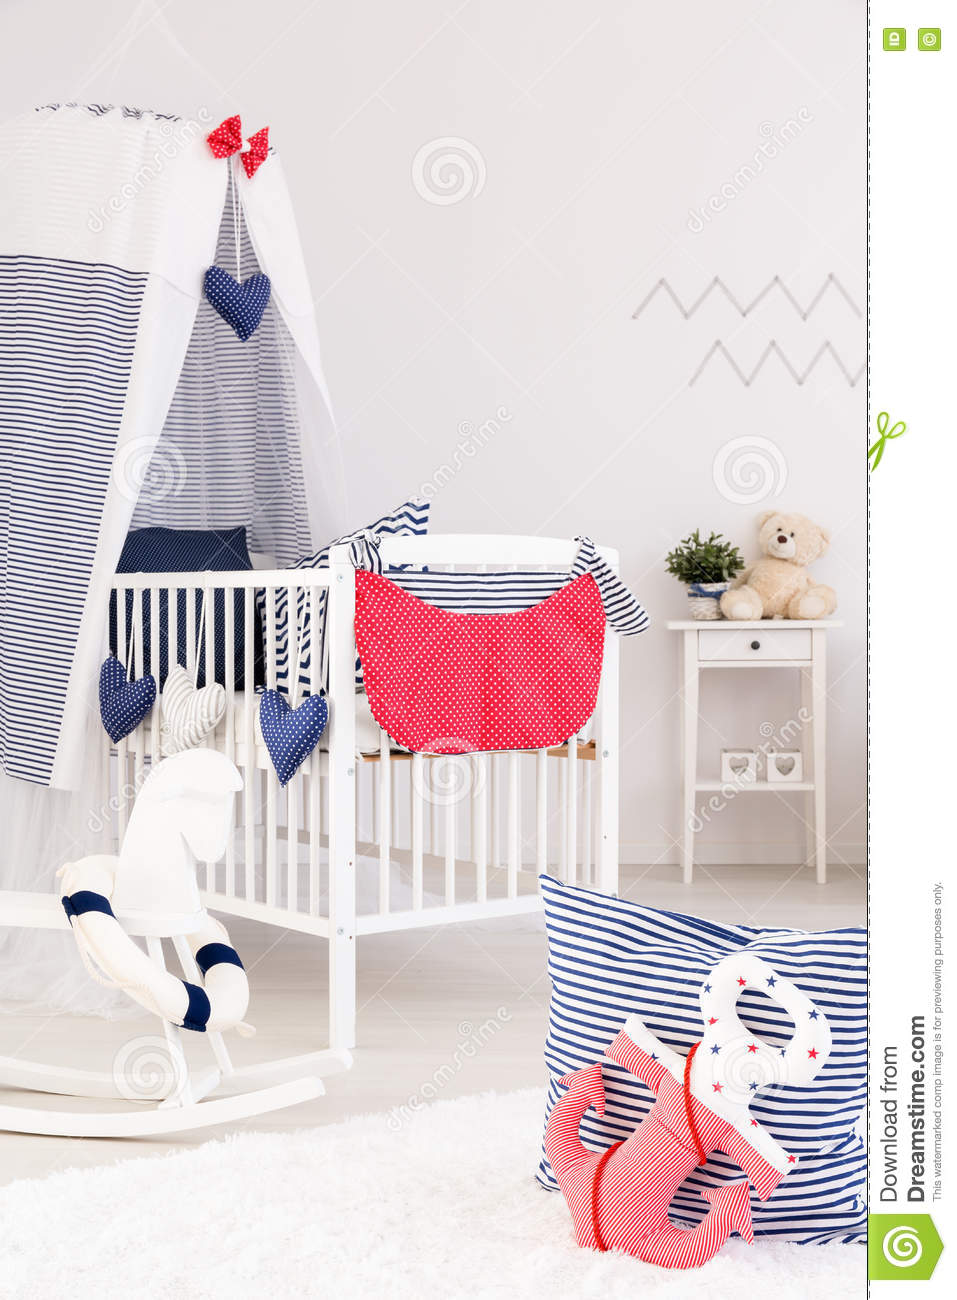 121 Baby Bedding Set Photos Free Royalty Free Stock Photos From Dreamstime